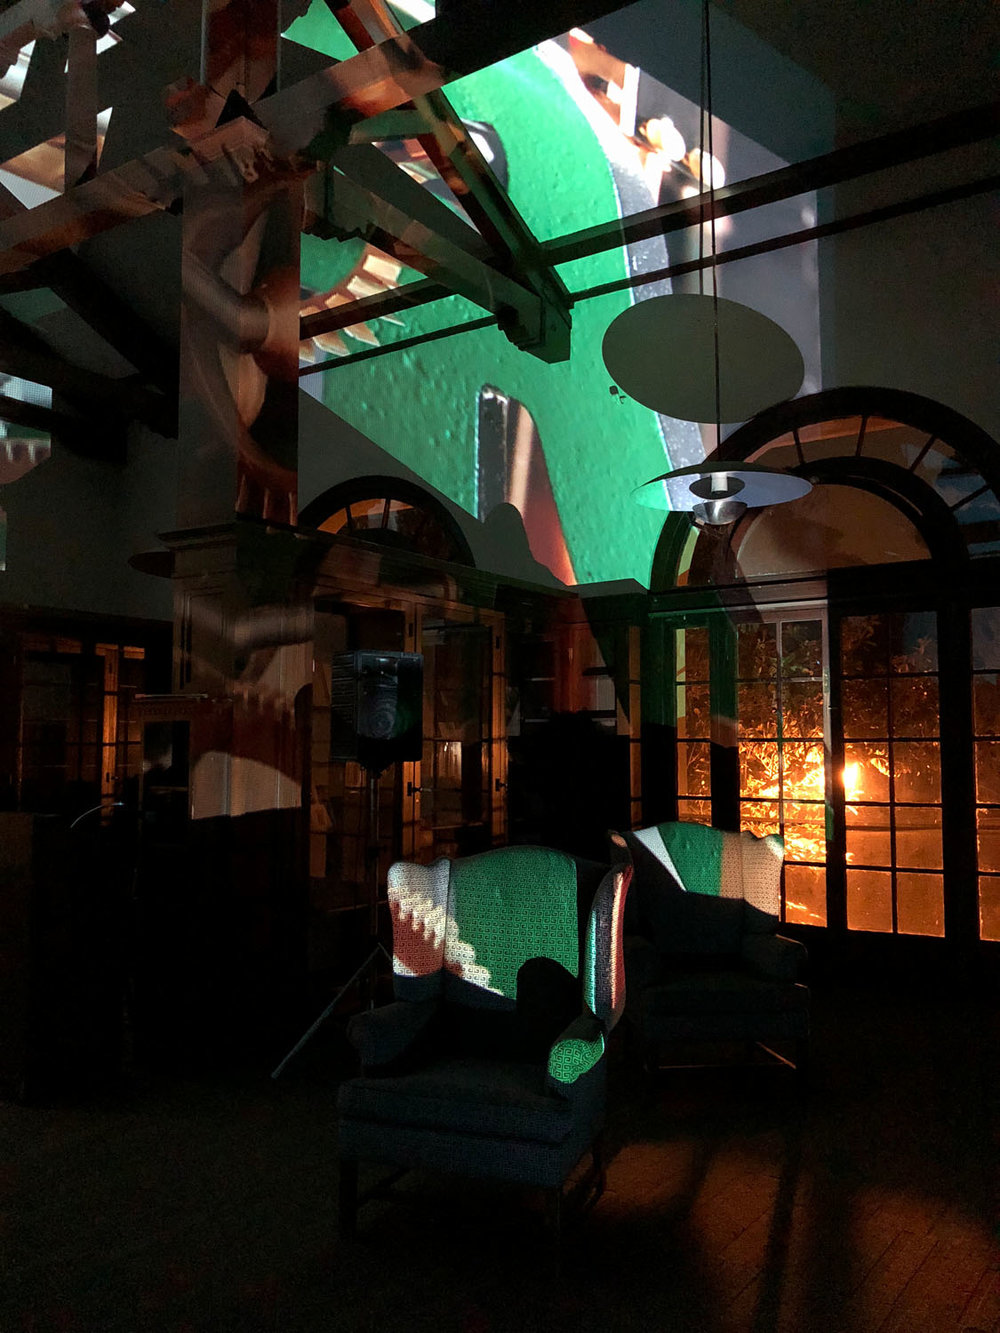 The Bender Room , an evening of new musical works by Kris Force, Brendan Glasson, and Coconut, featuring handmade instruments and video projection by Rebeca Bollinger, performed in the Mills College Bender Room—formerly part of the Margaret Carnegie Library designed by architect Julia Morgan.   Clock Tock Tick Too in Green , 2018, digital video projection, 4 minute loop with sound, size variable